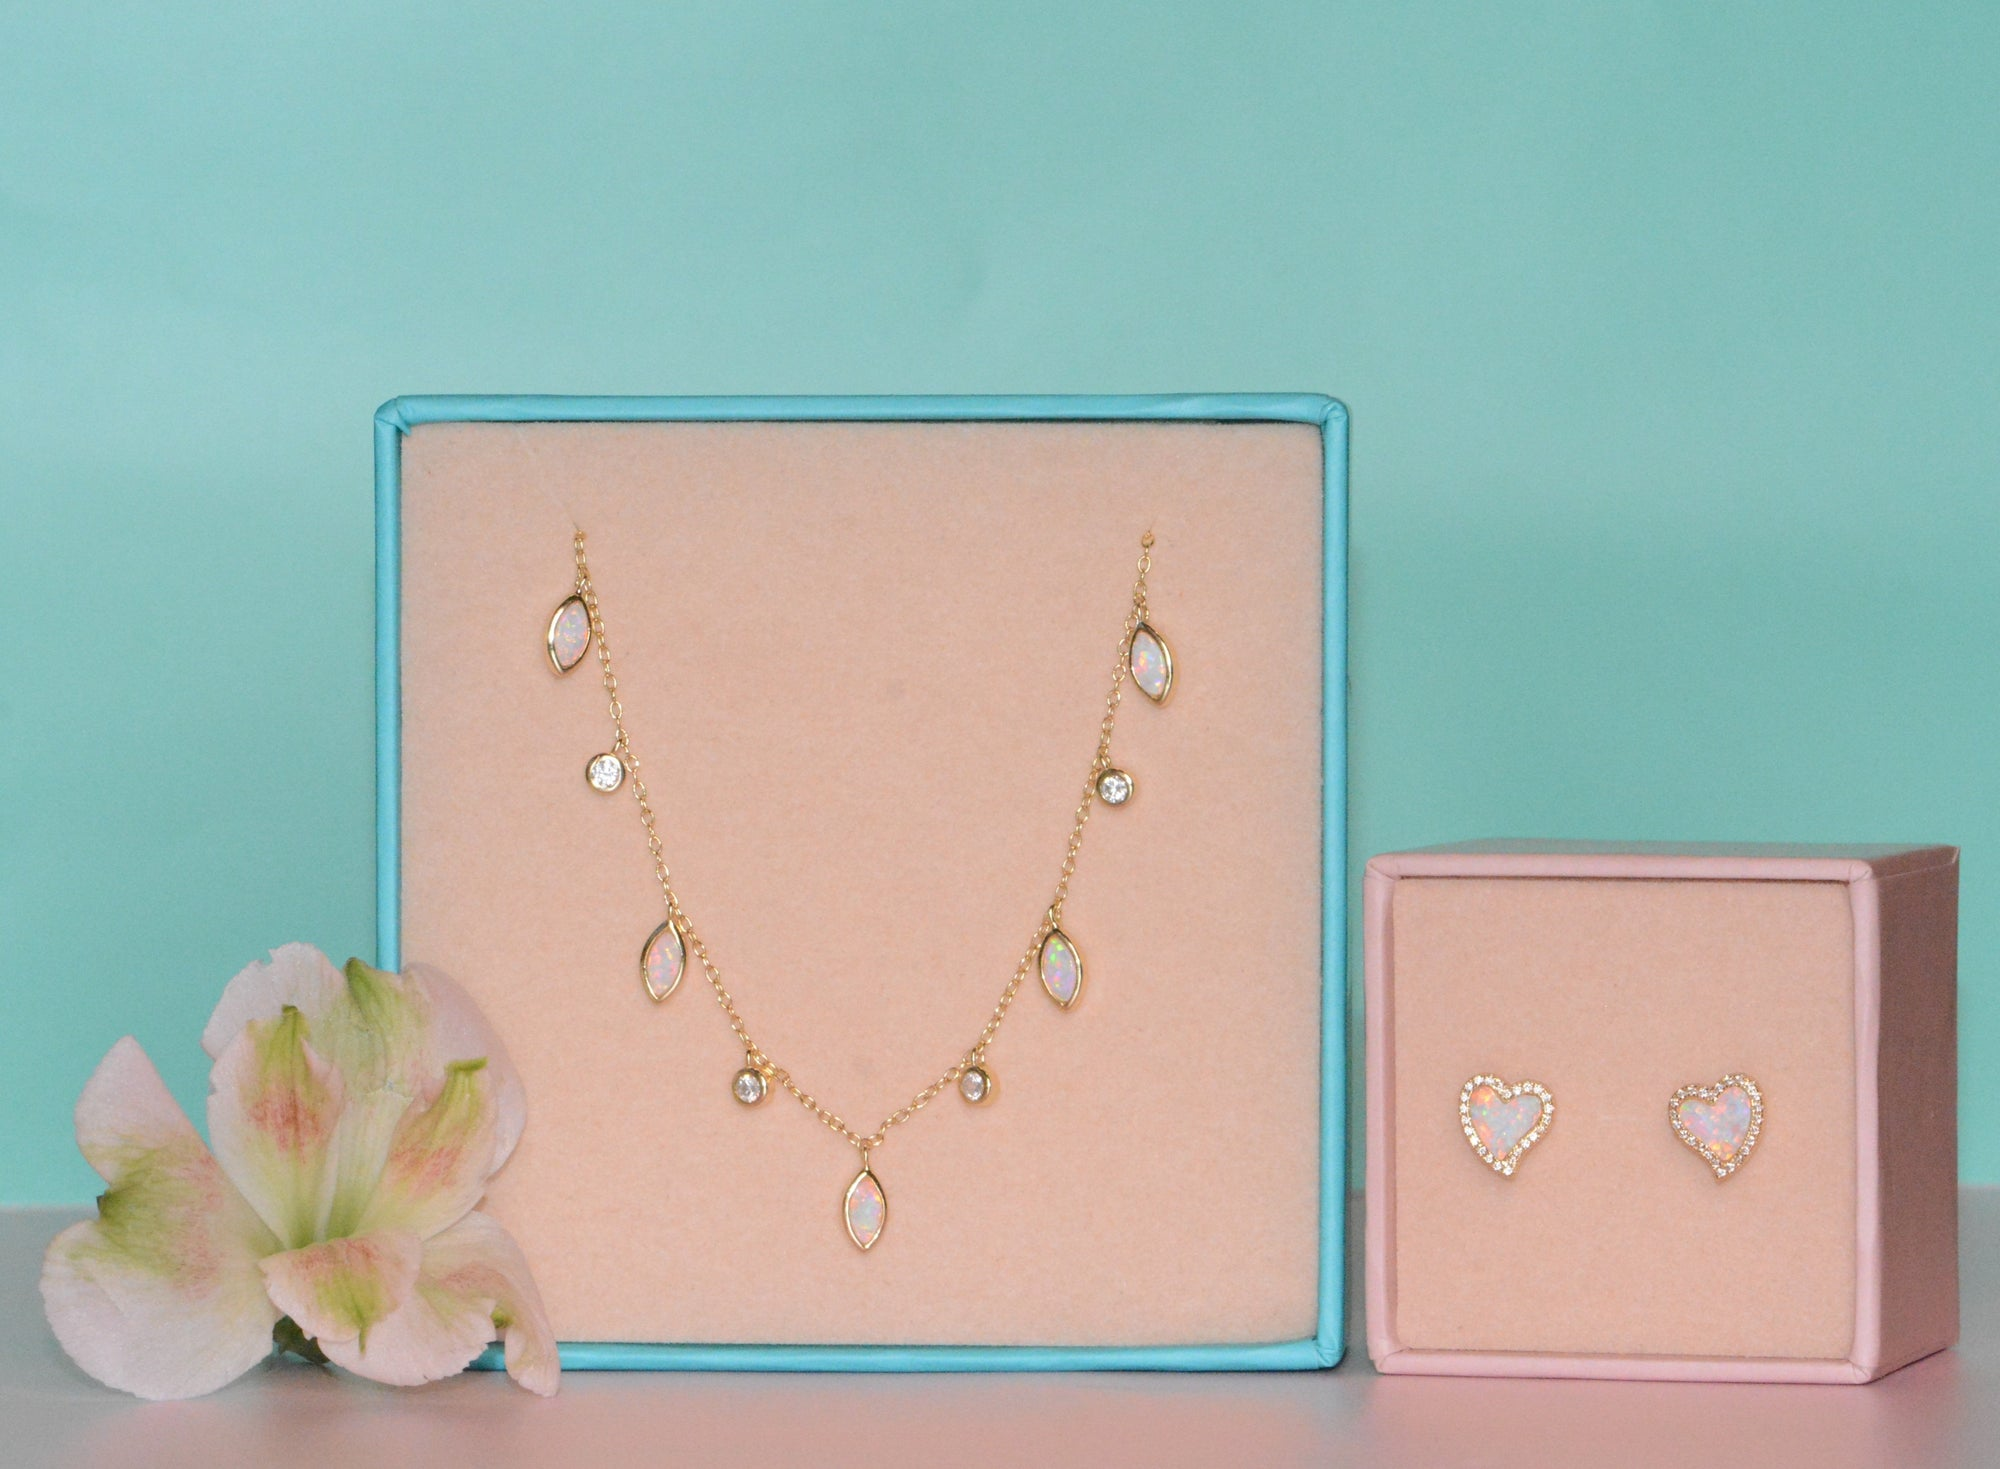 Gift Set | Amore Heart Earrings + Drops of Spring Necklace